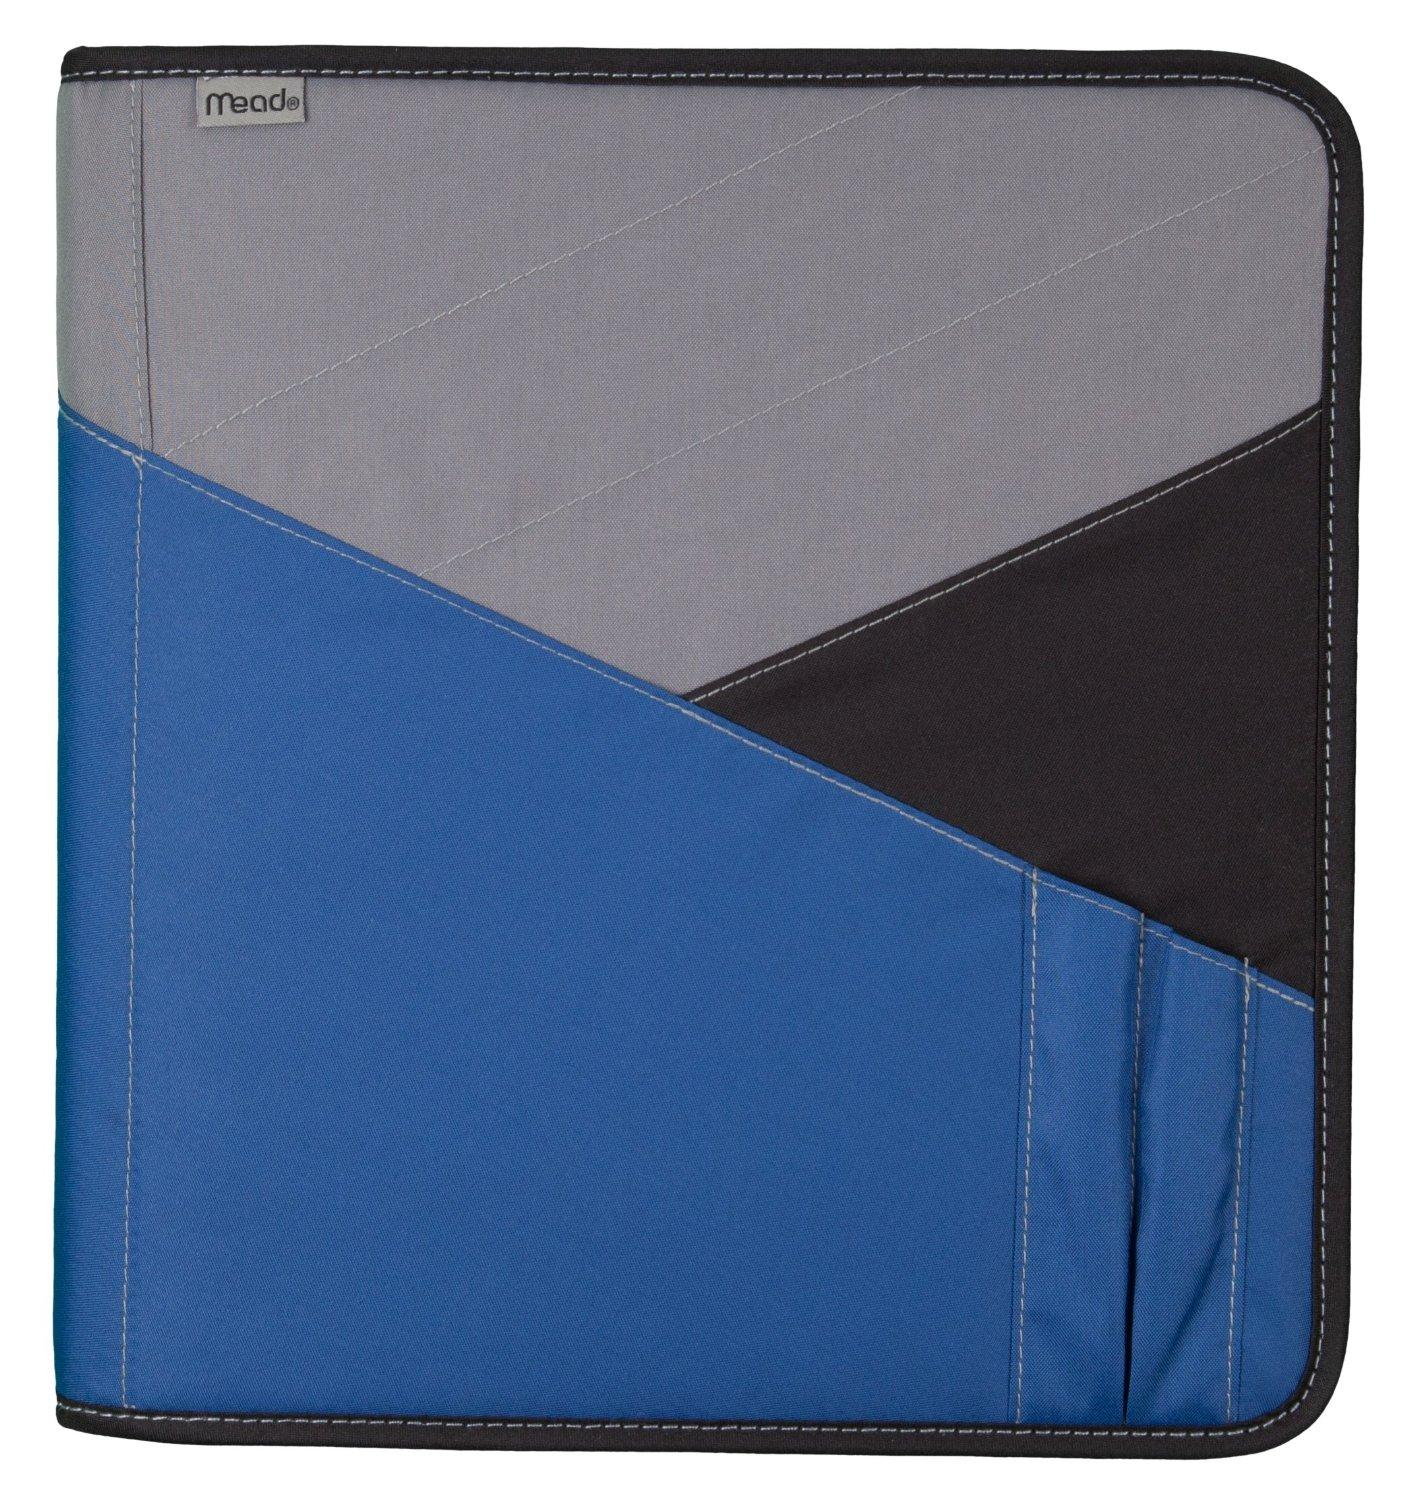 Mead zipper binder with expanding file 3 ring binder 1 1 2 blue 72198 for Trapper keeper 2 sewn binder with exterior storage